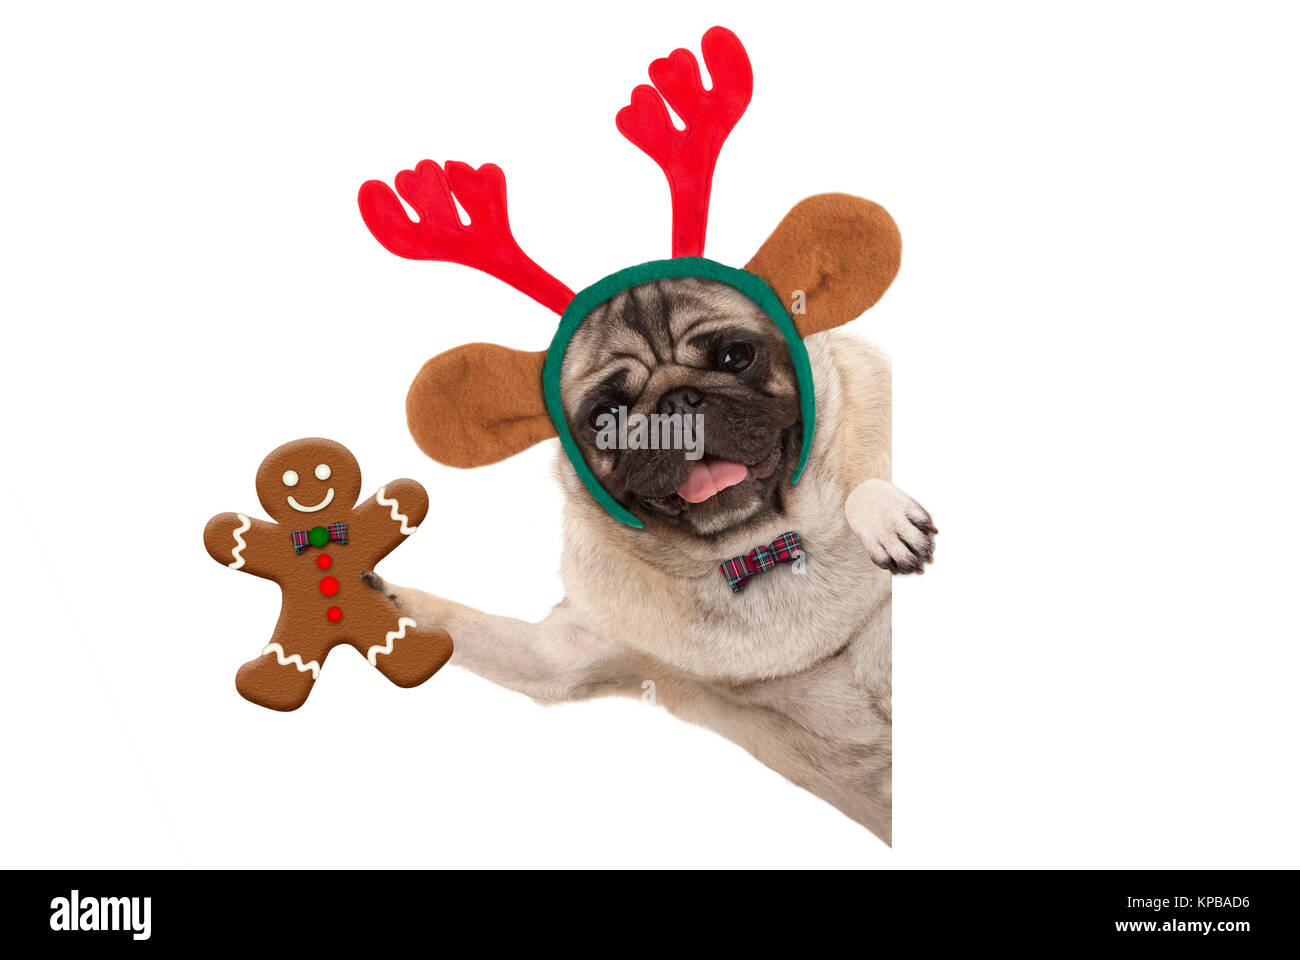 smiling Christmas pug dog holding up gingerbread man and wearing reindeer antlers headband, with paw on white banner, - Stock Image